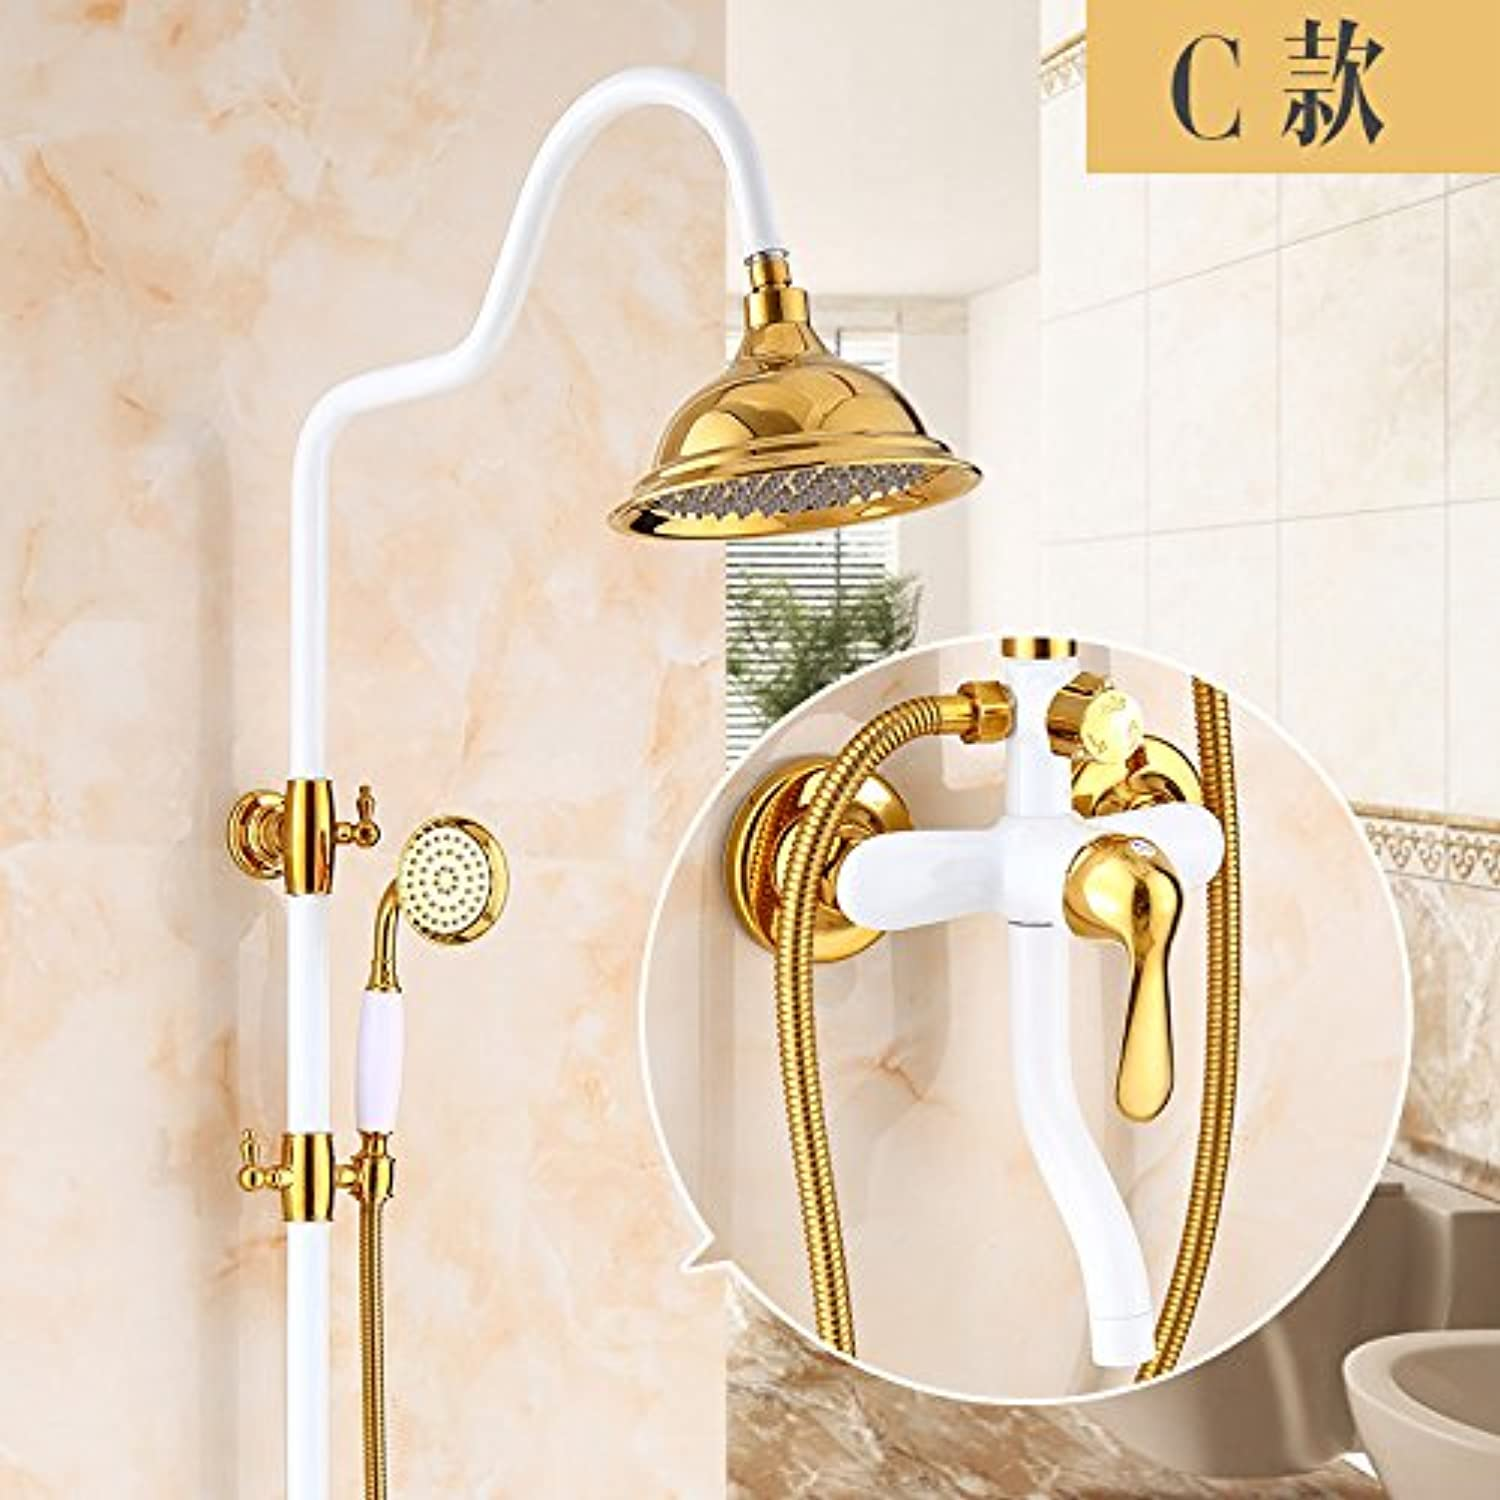 Bijjaladeva Antique Bathroom Sink Vessel Faucet Basin Mixer Tap The brass body golden showers set retro shower faucet white antique shower C